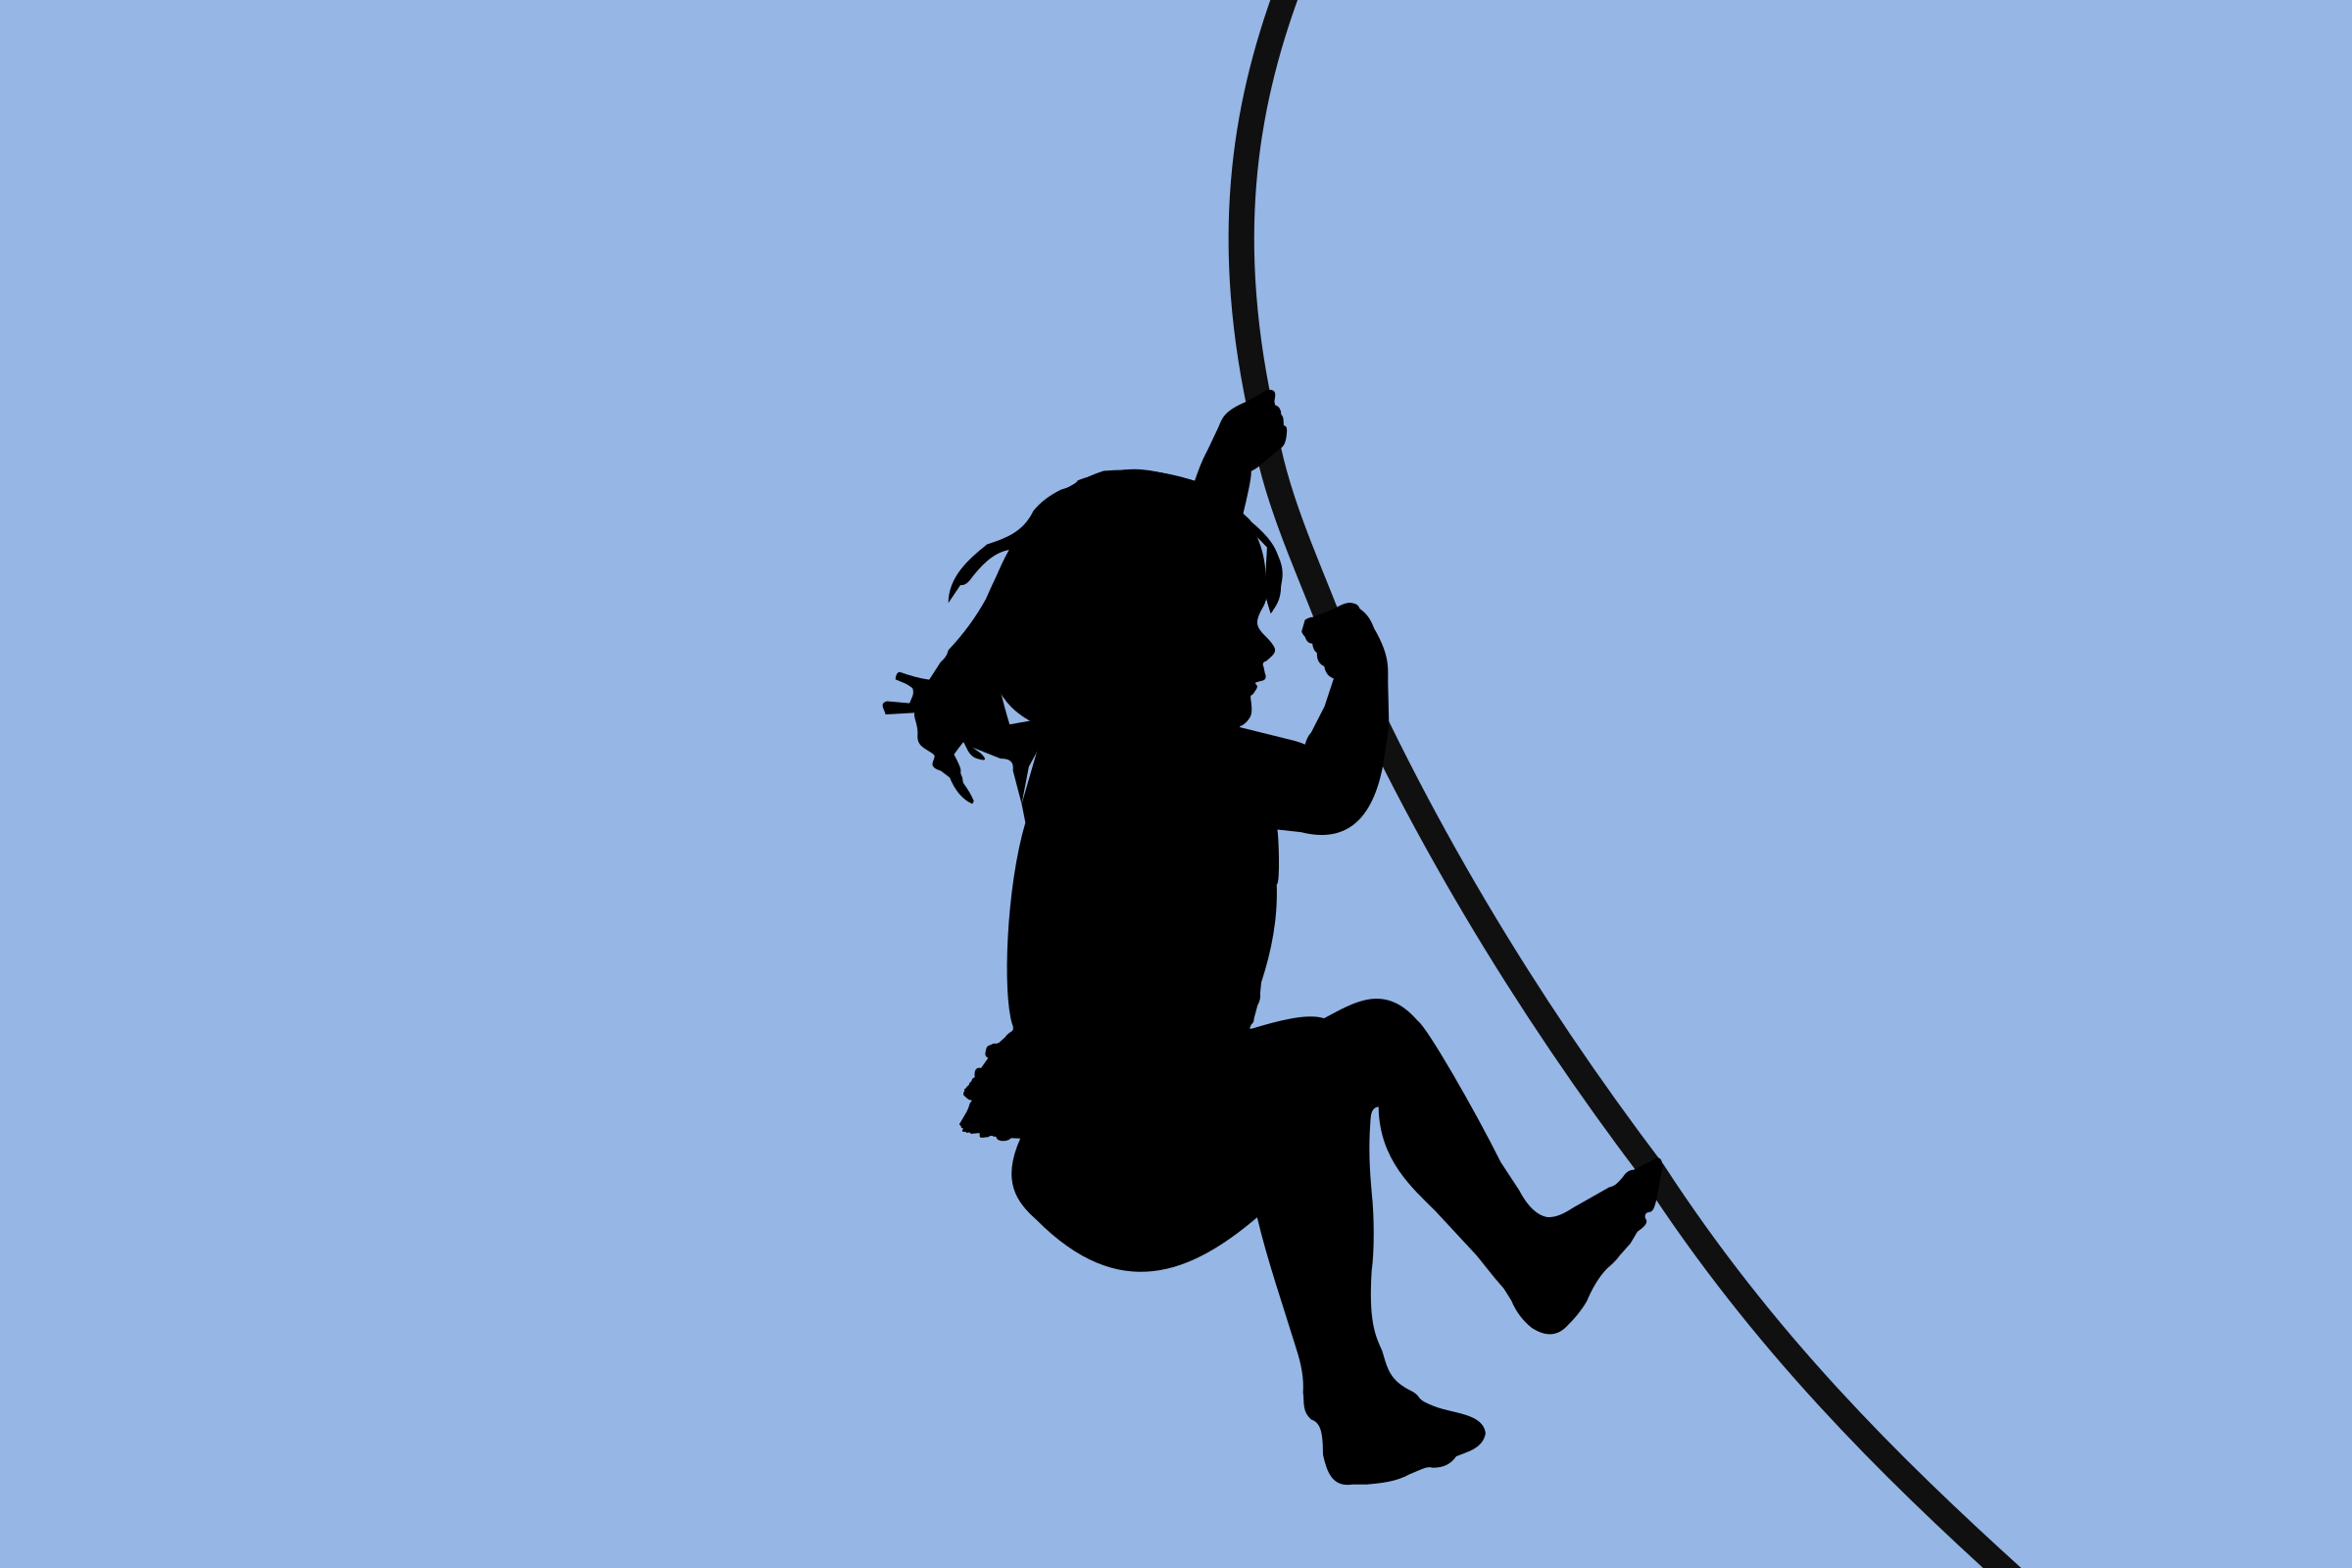 Child Climbing Silhouette by SunKing2